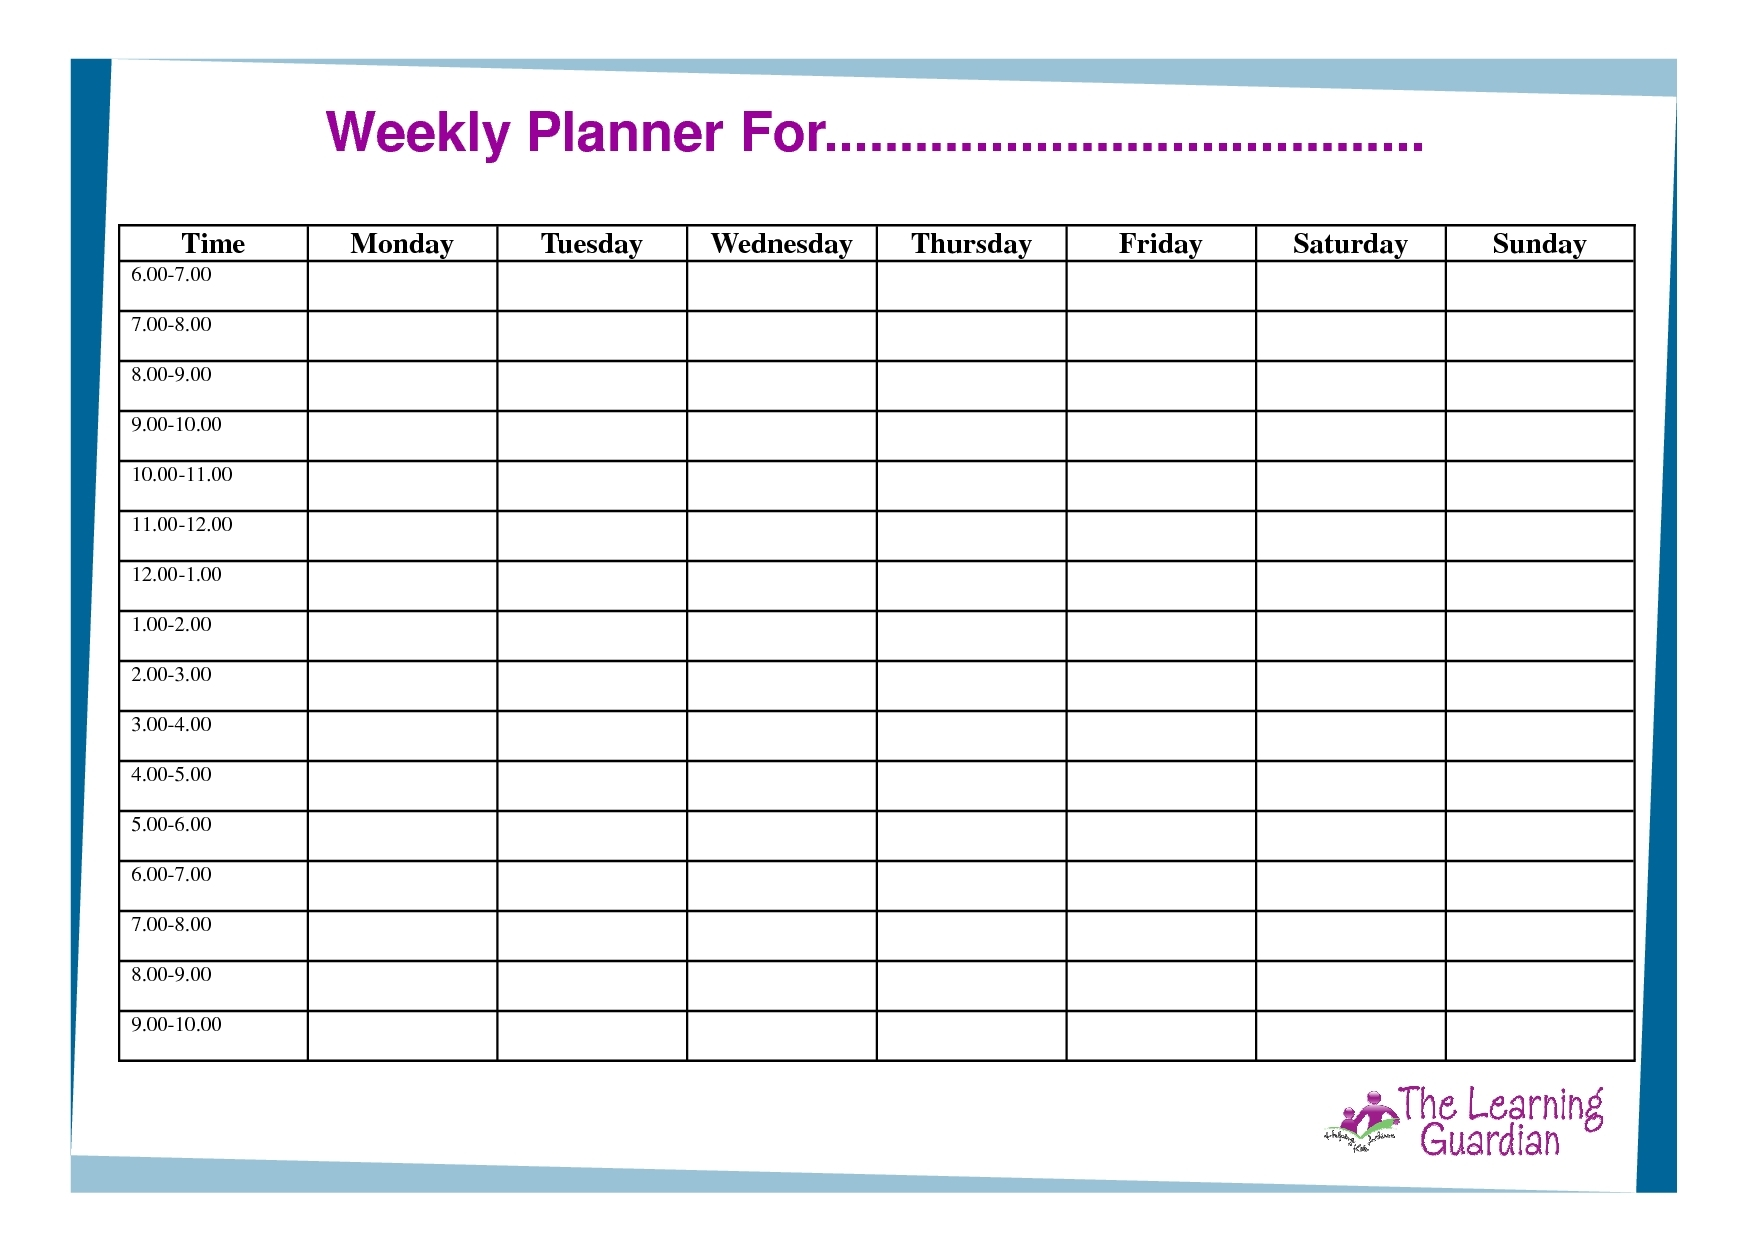 Week Day Schedule Template Excel Timetable Landscape Format Page inside Type In And Printable Calendar With Hours